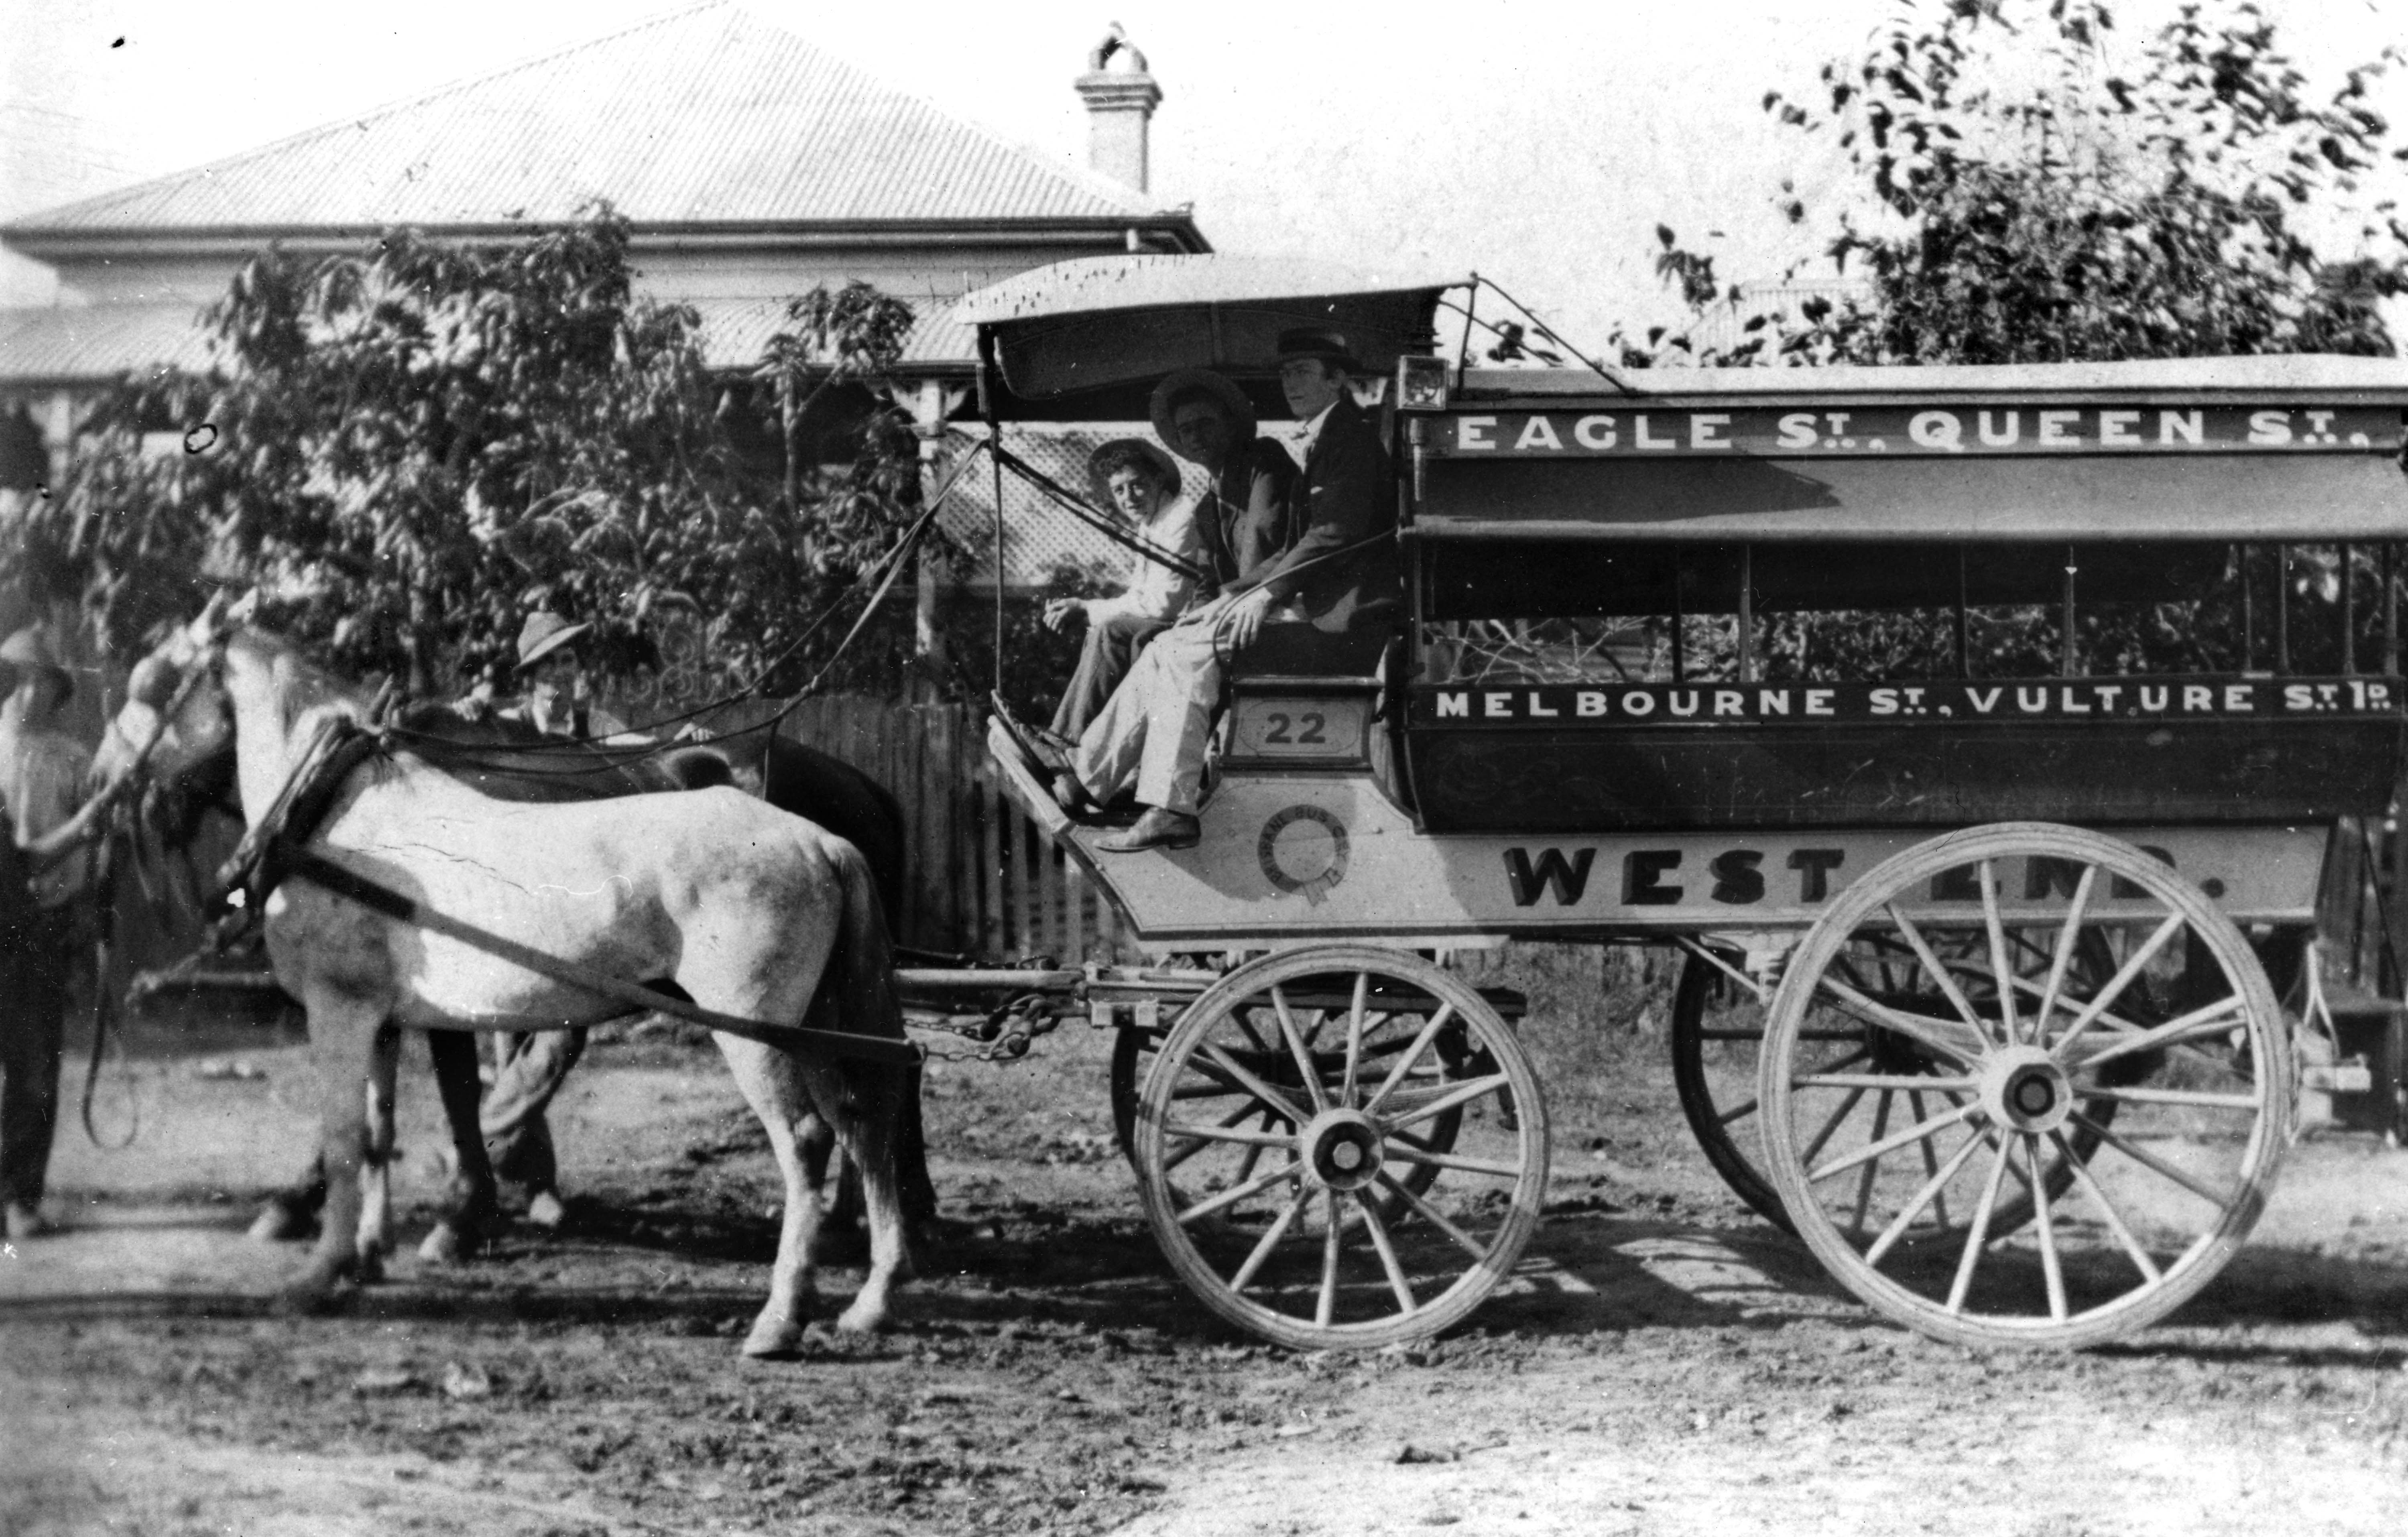 A West End omnibus. (Sate Library of Queensland)